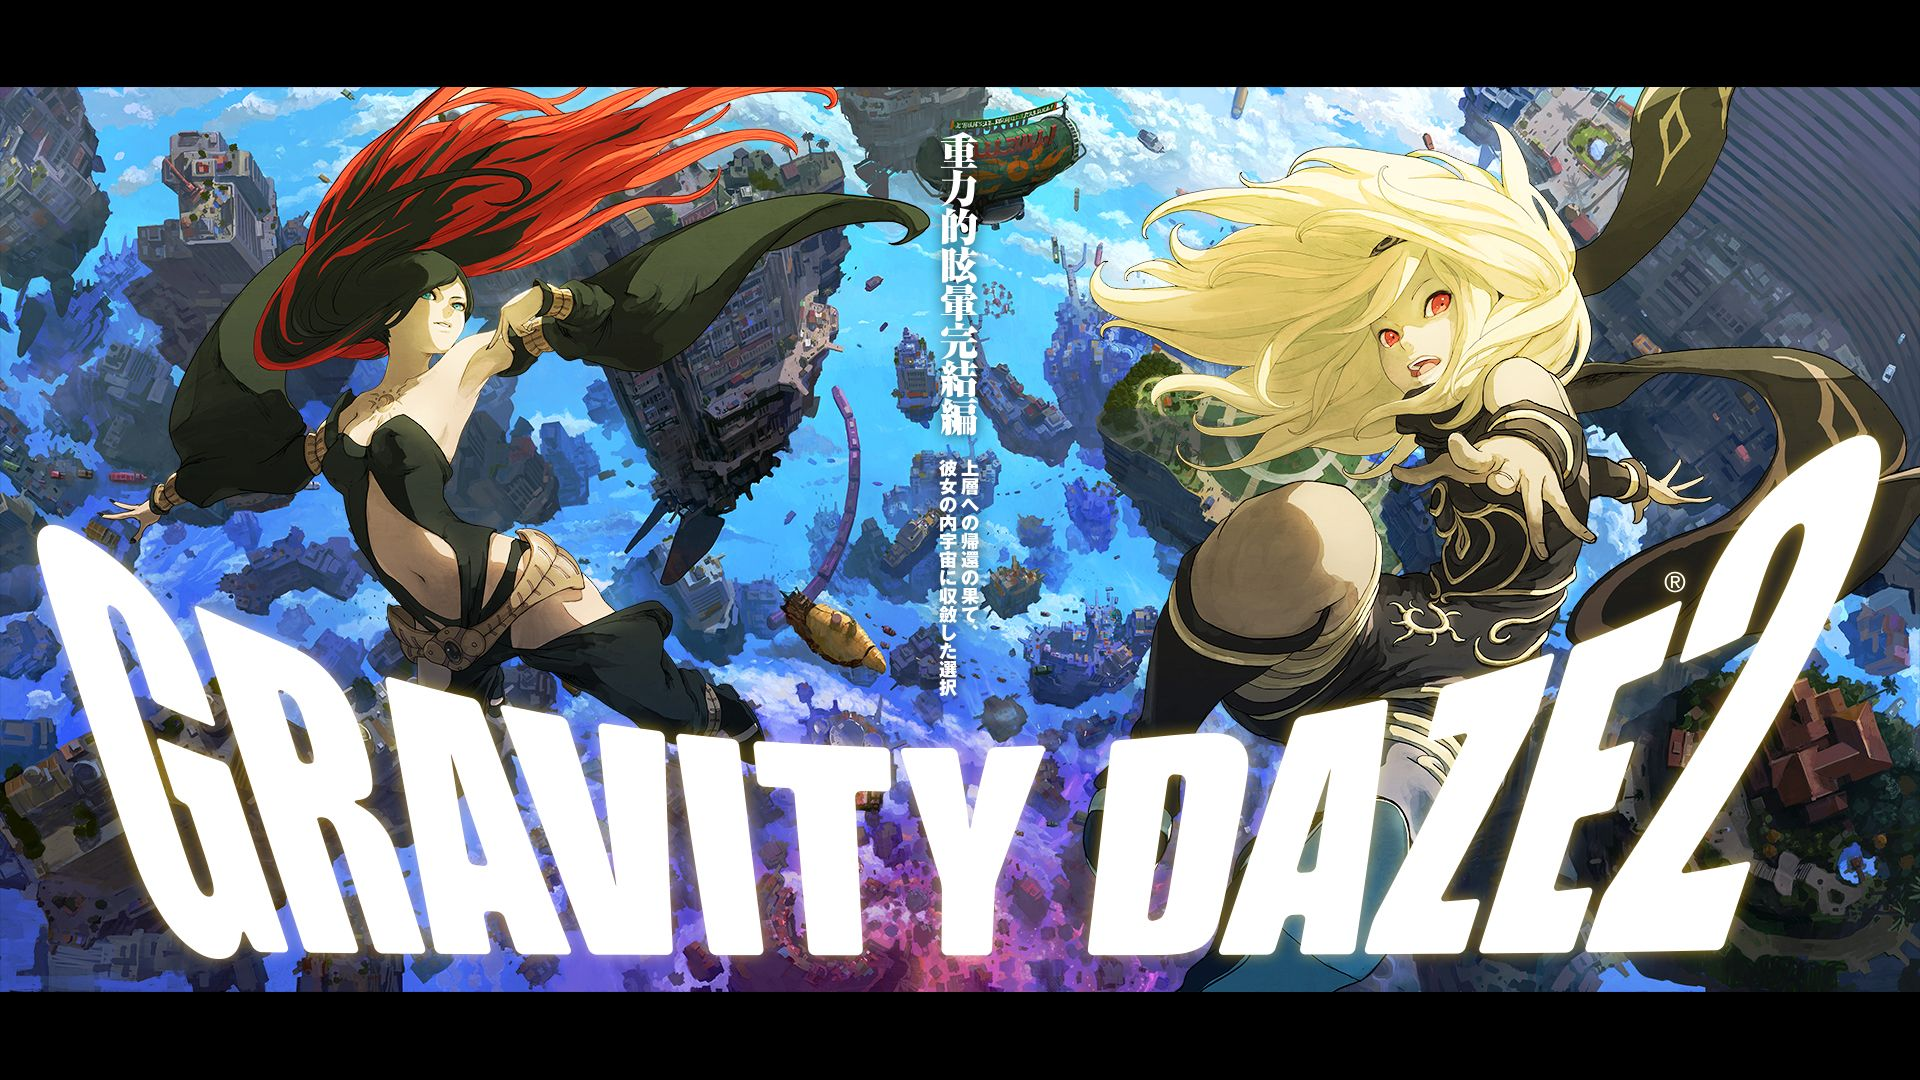 Gravity Rush 2 Pics, Video Game Collection